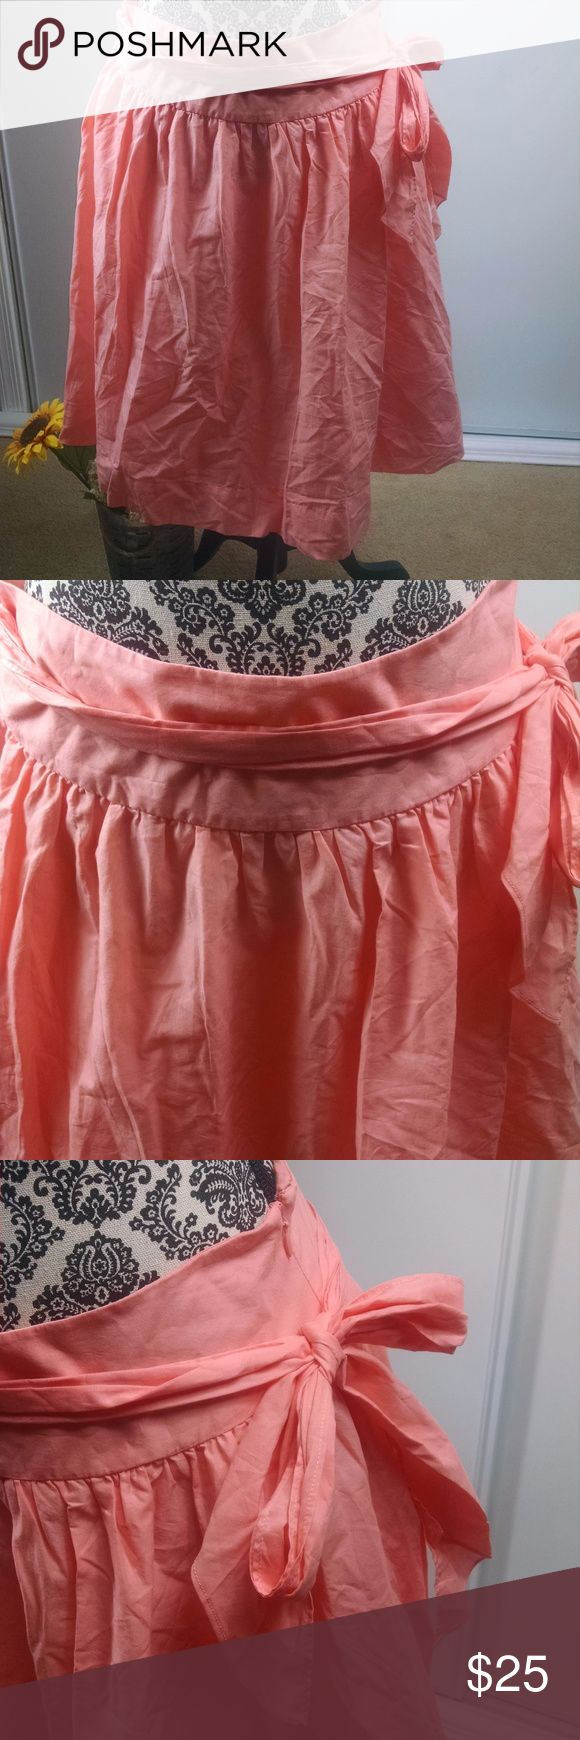 "Garnet Hill womens size 8 flare layered skirt Garnet Hill womens size 8 skirt flare layered side zip tie 100% cotton peach - gently used condition with no flaws and from a smoke free home.    Measurements are 15.5"" waist laying flat and 22.5"" long. Garnet Hill Skirts A-Line or Full"